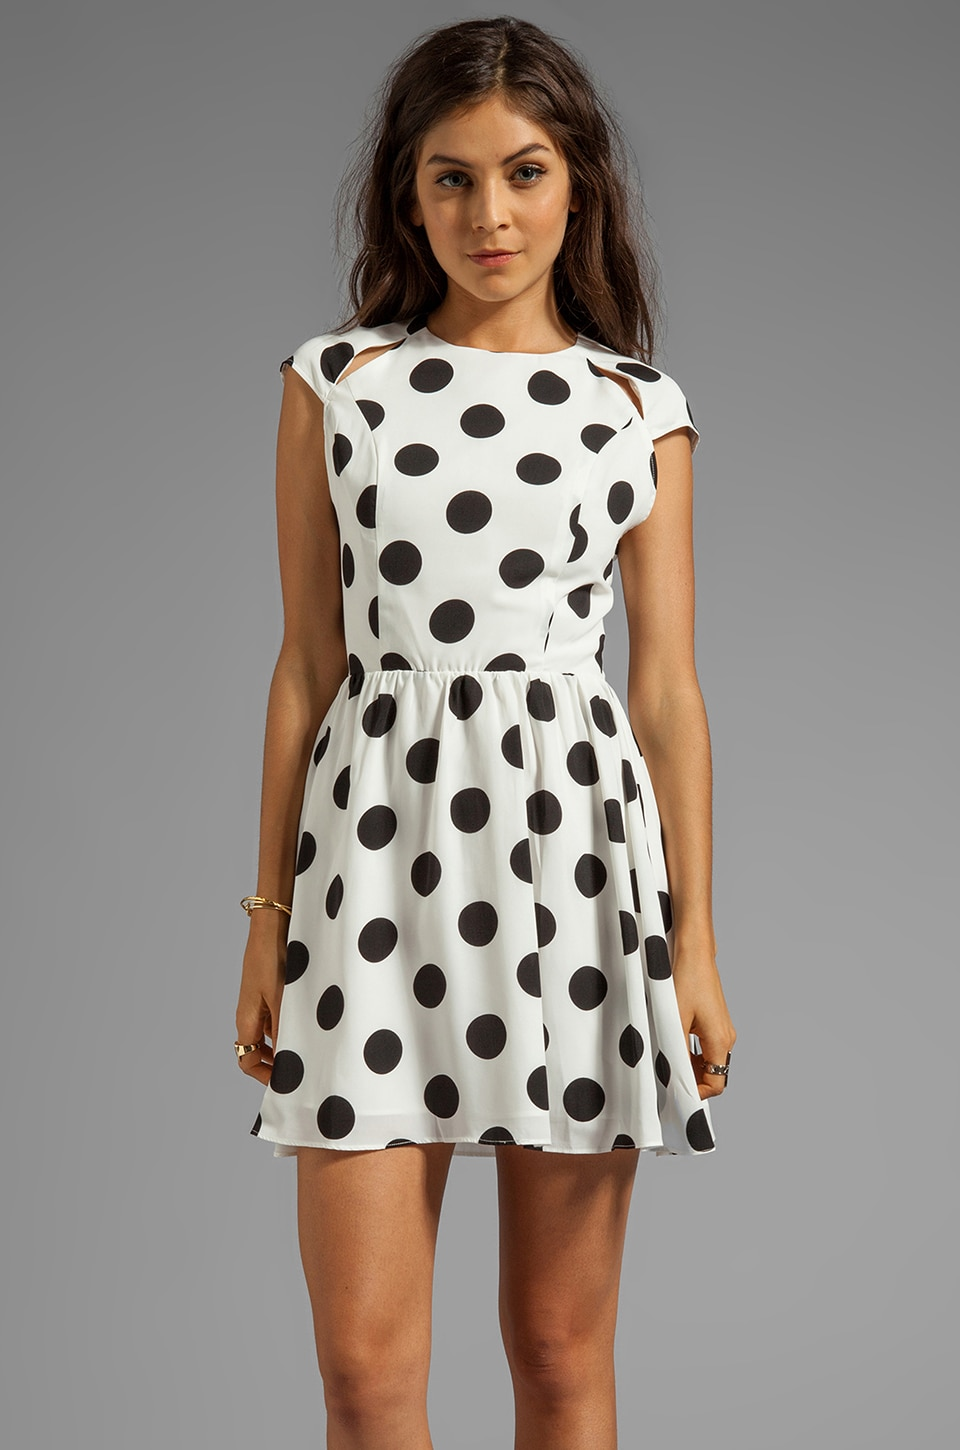 Dolce Vita Alishia Rayon Dot Dress in White/Black